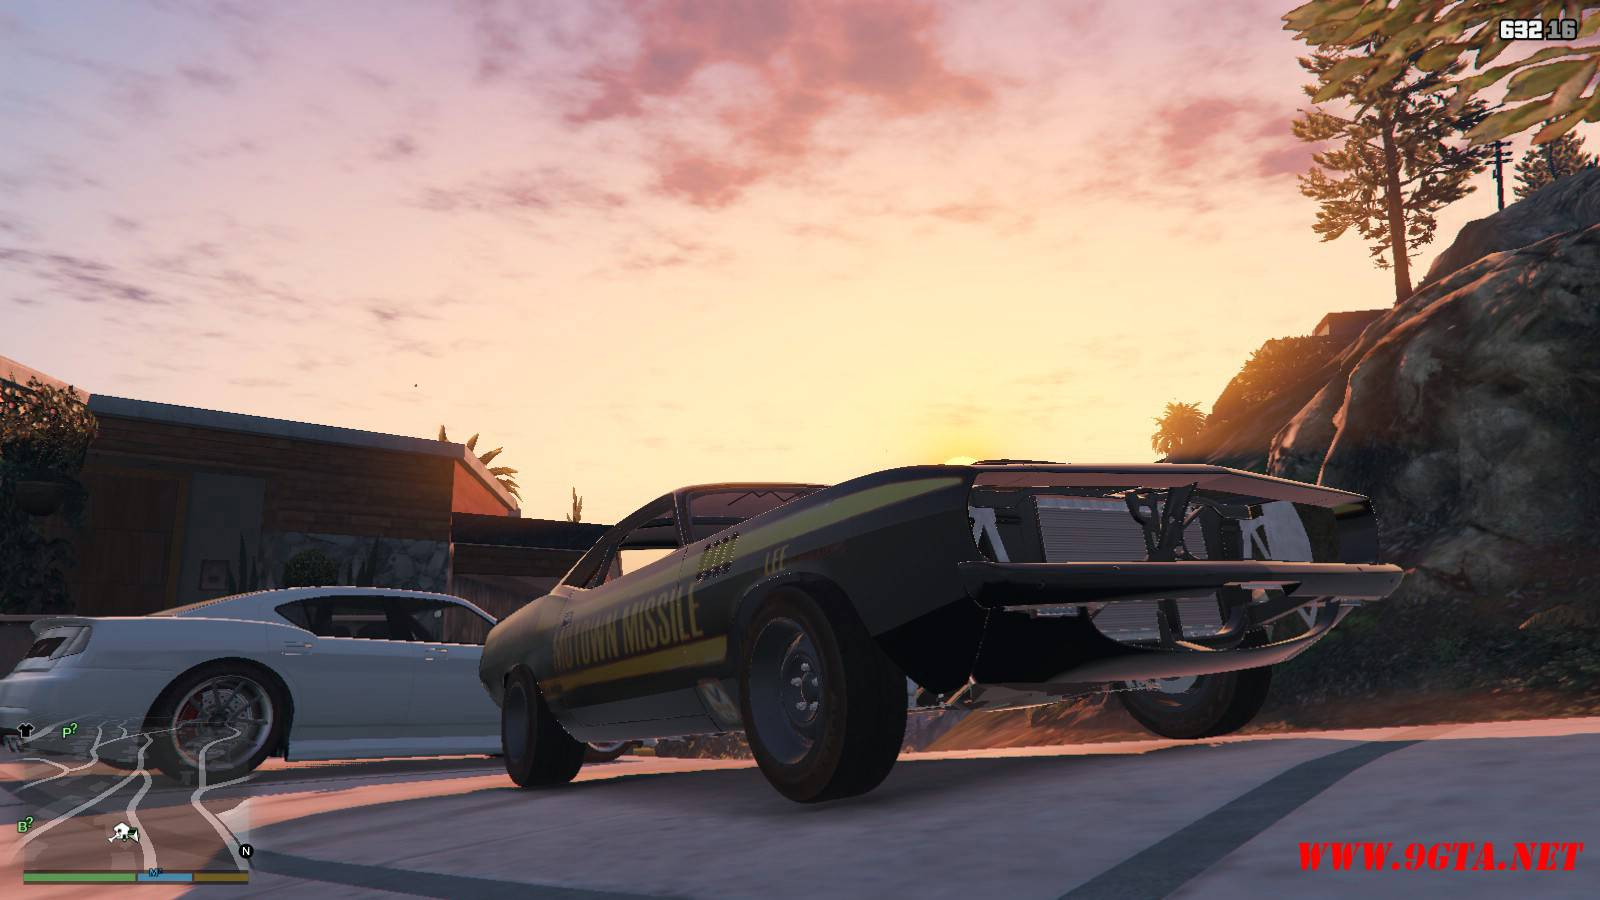 Plymouth Kuda Beck Customs Mod For GTA5 (8)